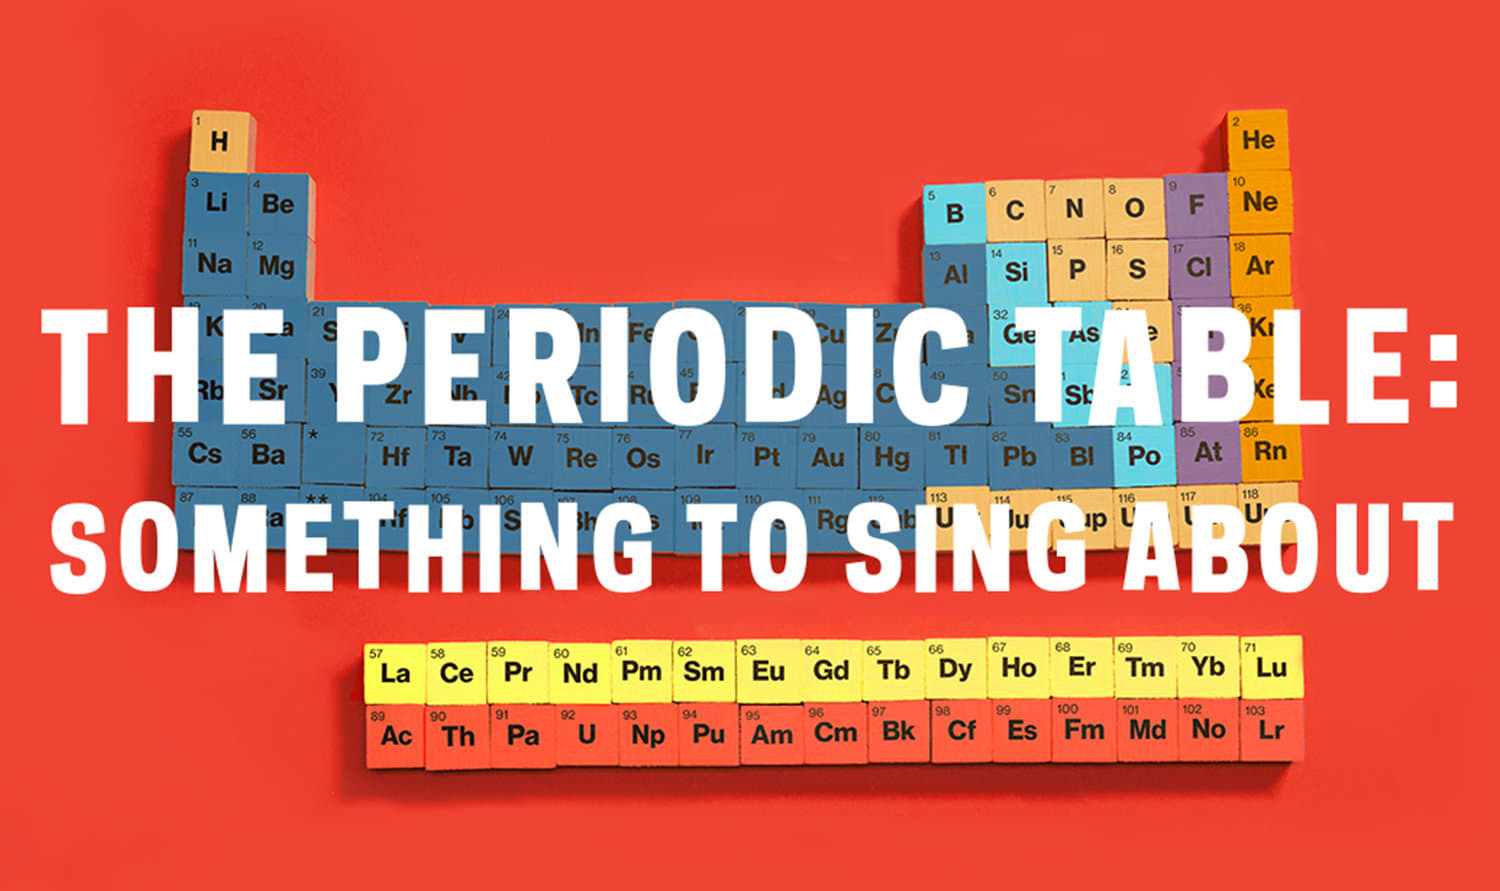 THE PERIODIC TABLE: SOMETHING TO SING ABOUT